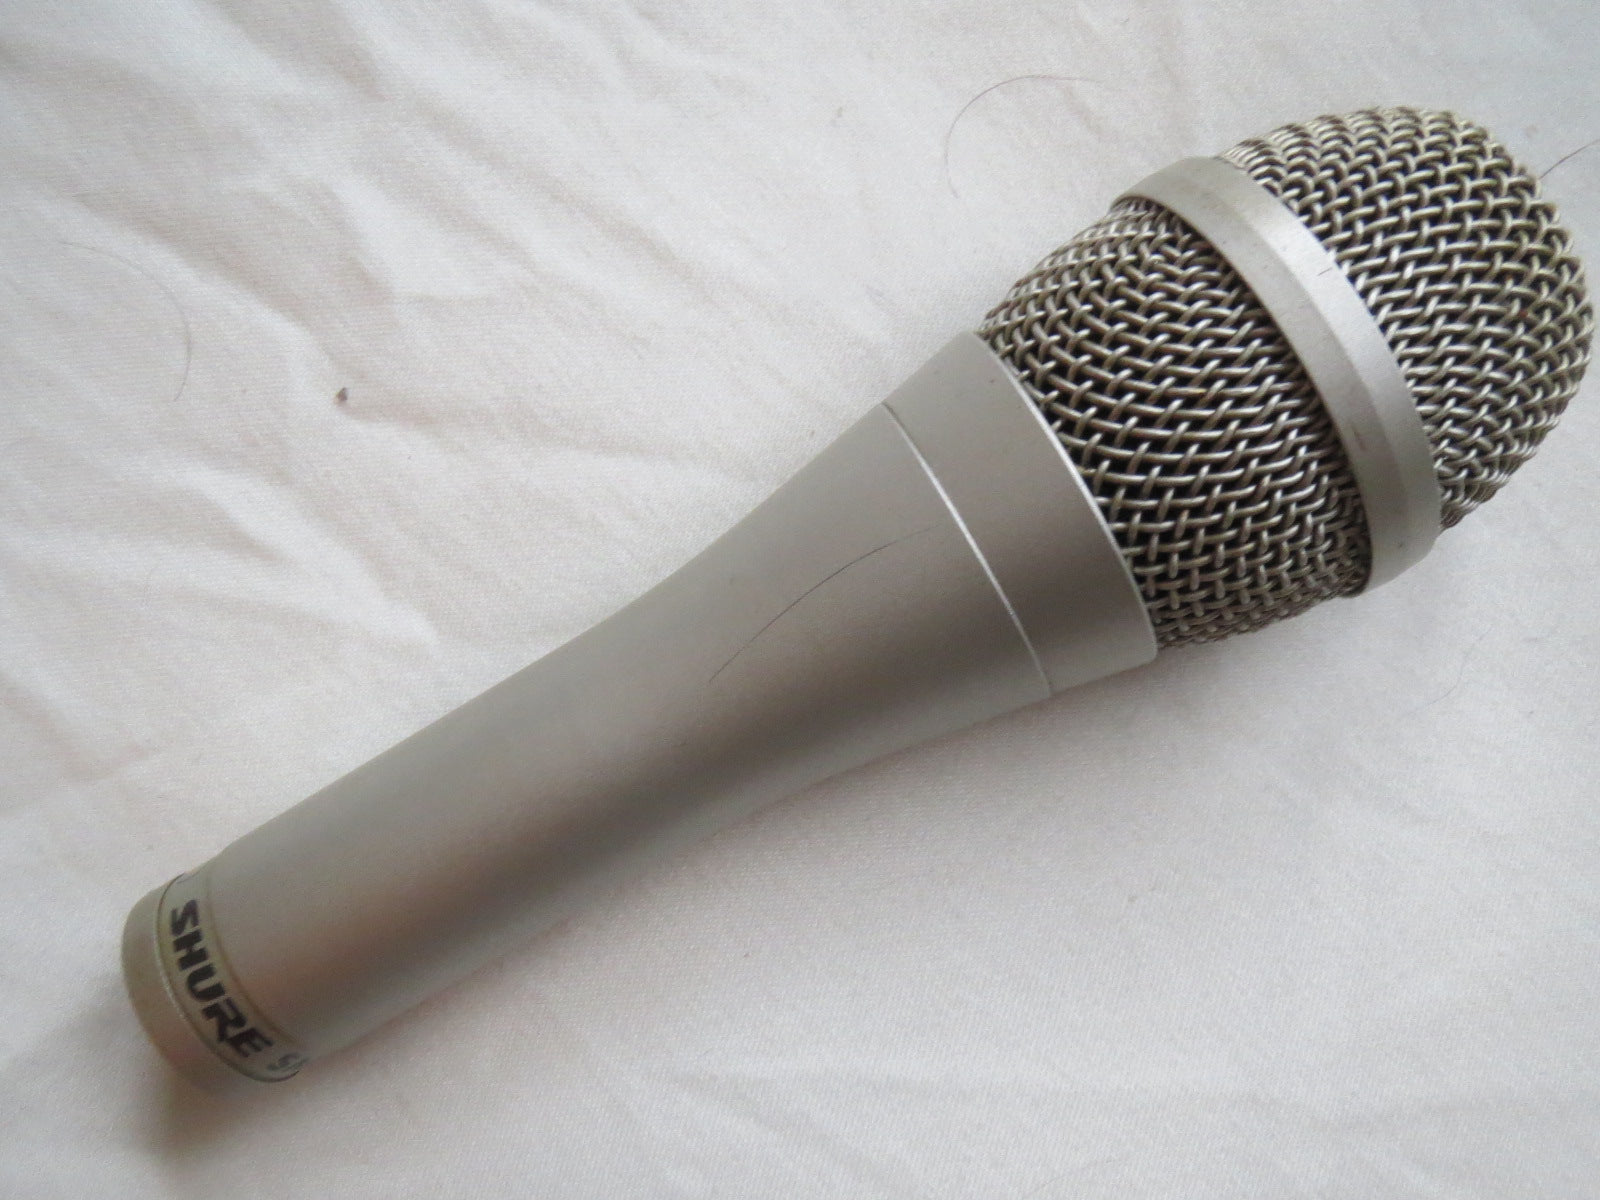 SHURE SM62 VINTAGE DYNAMIC CARDIOID MICROPHONE WITH XLR CONNECTOR